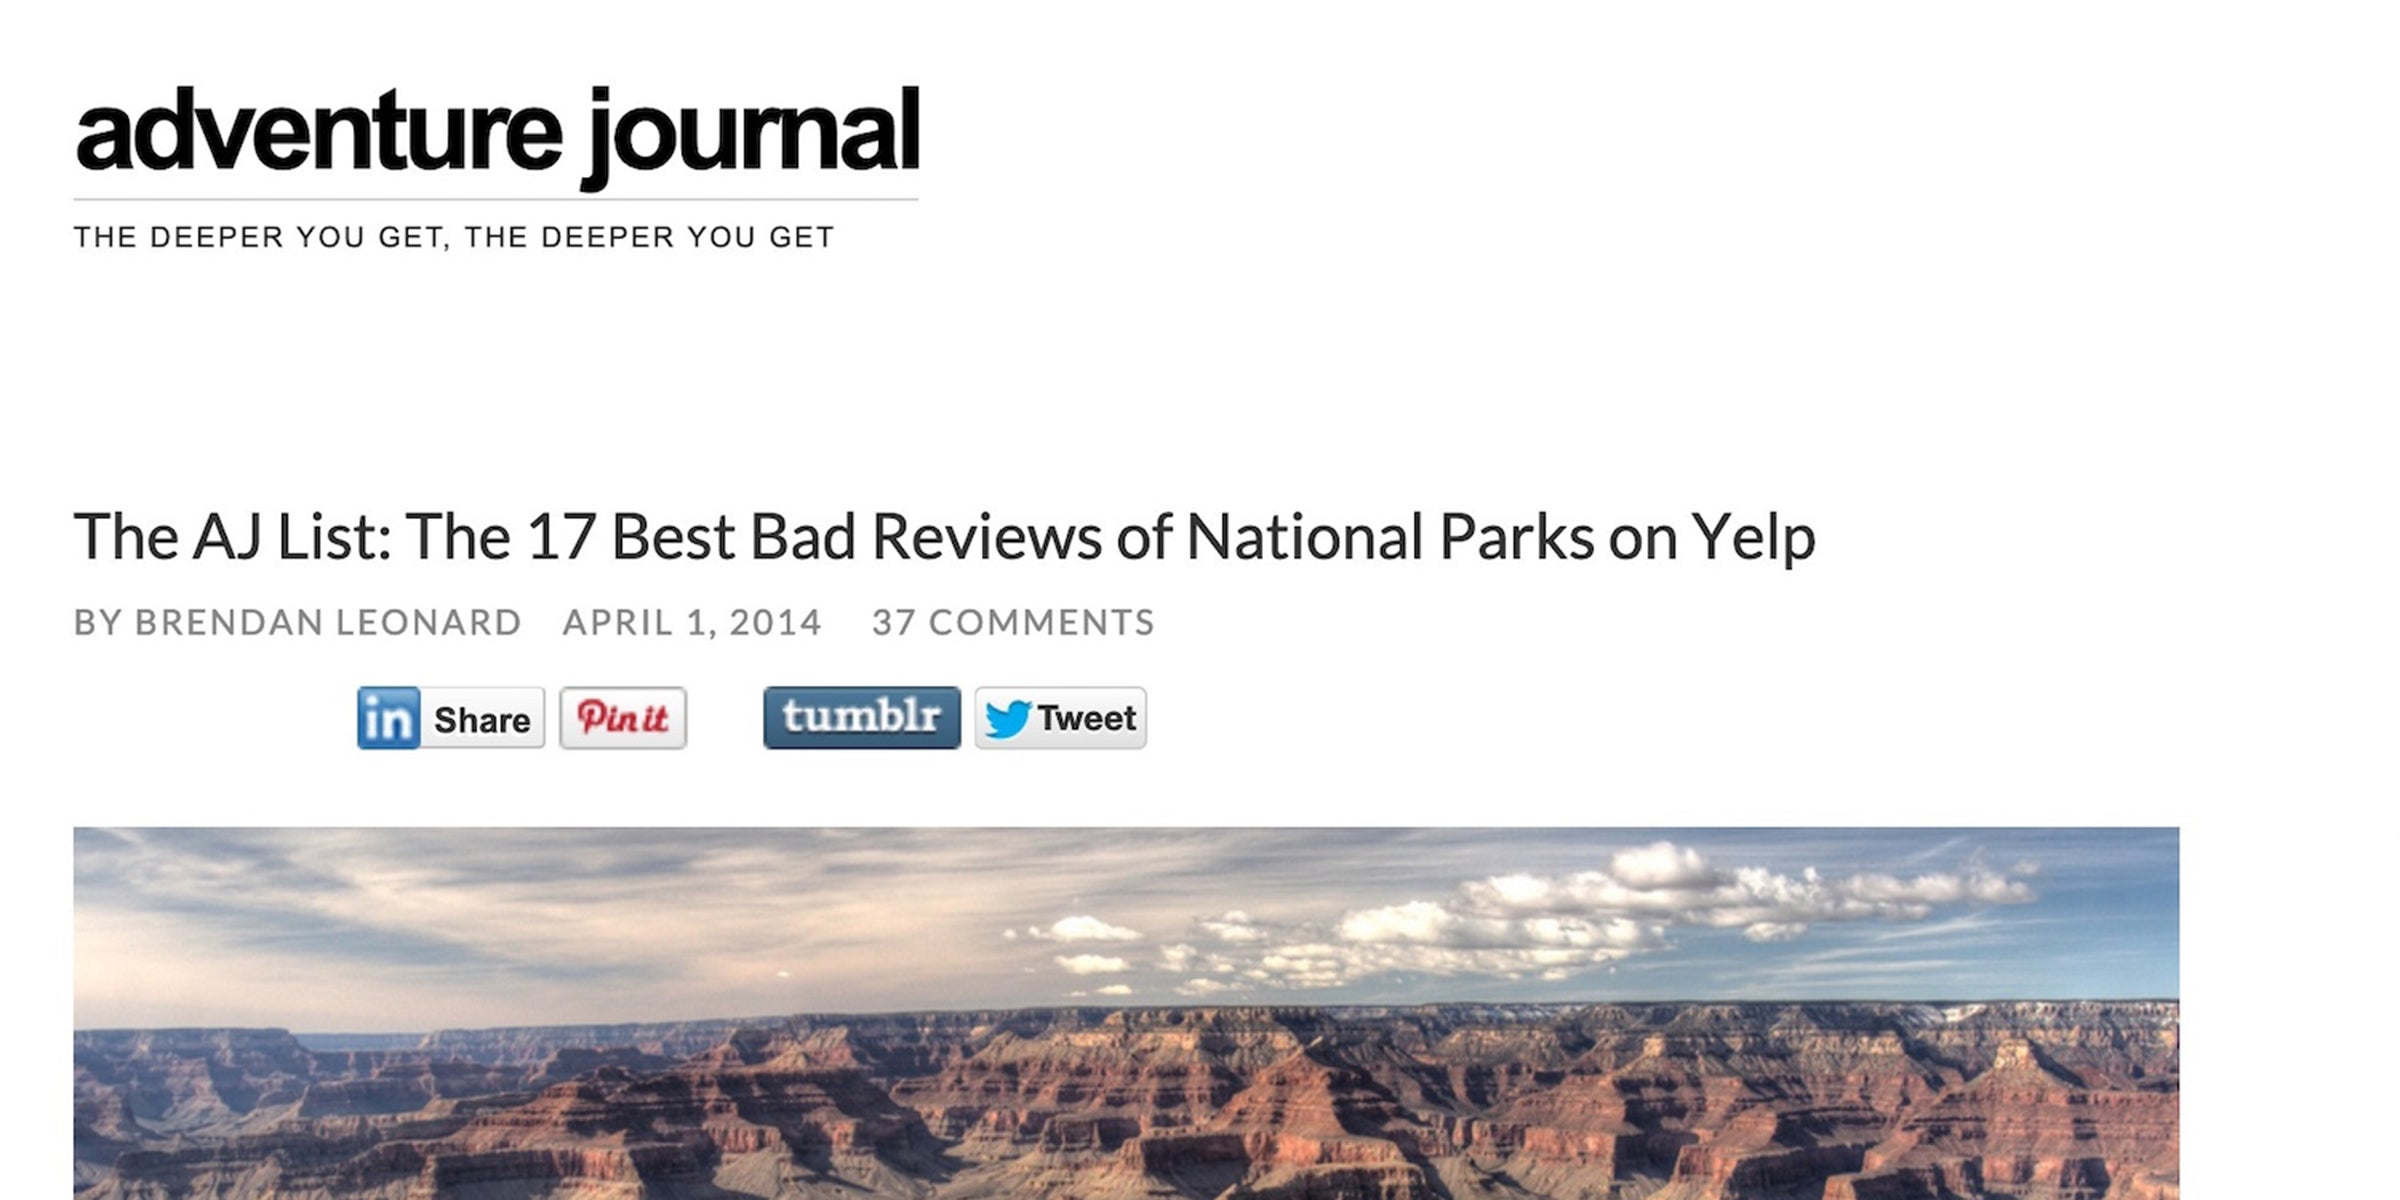 The AJ List: The 17 Best Bad Reviews of National Parks on Yelp